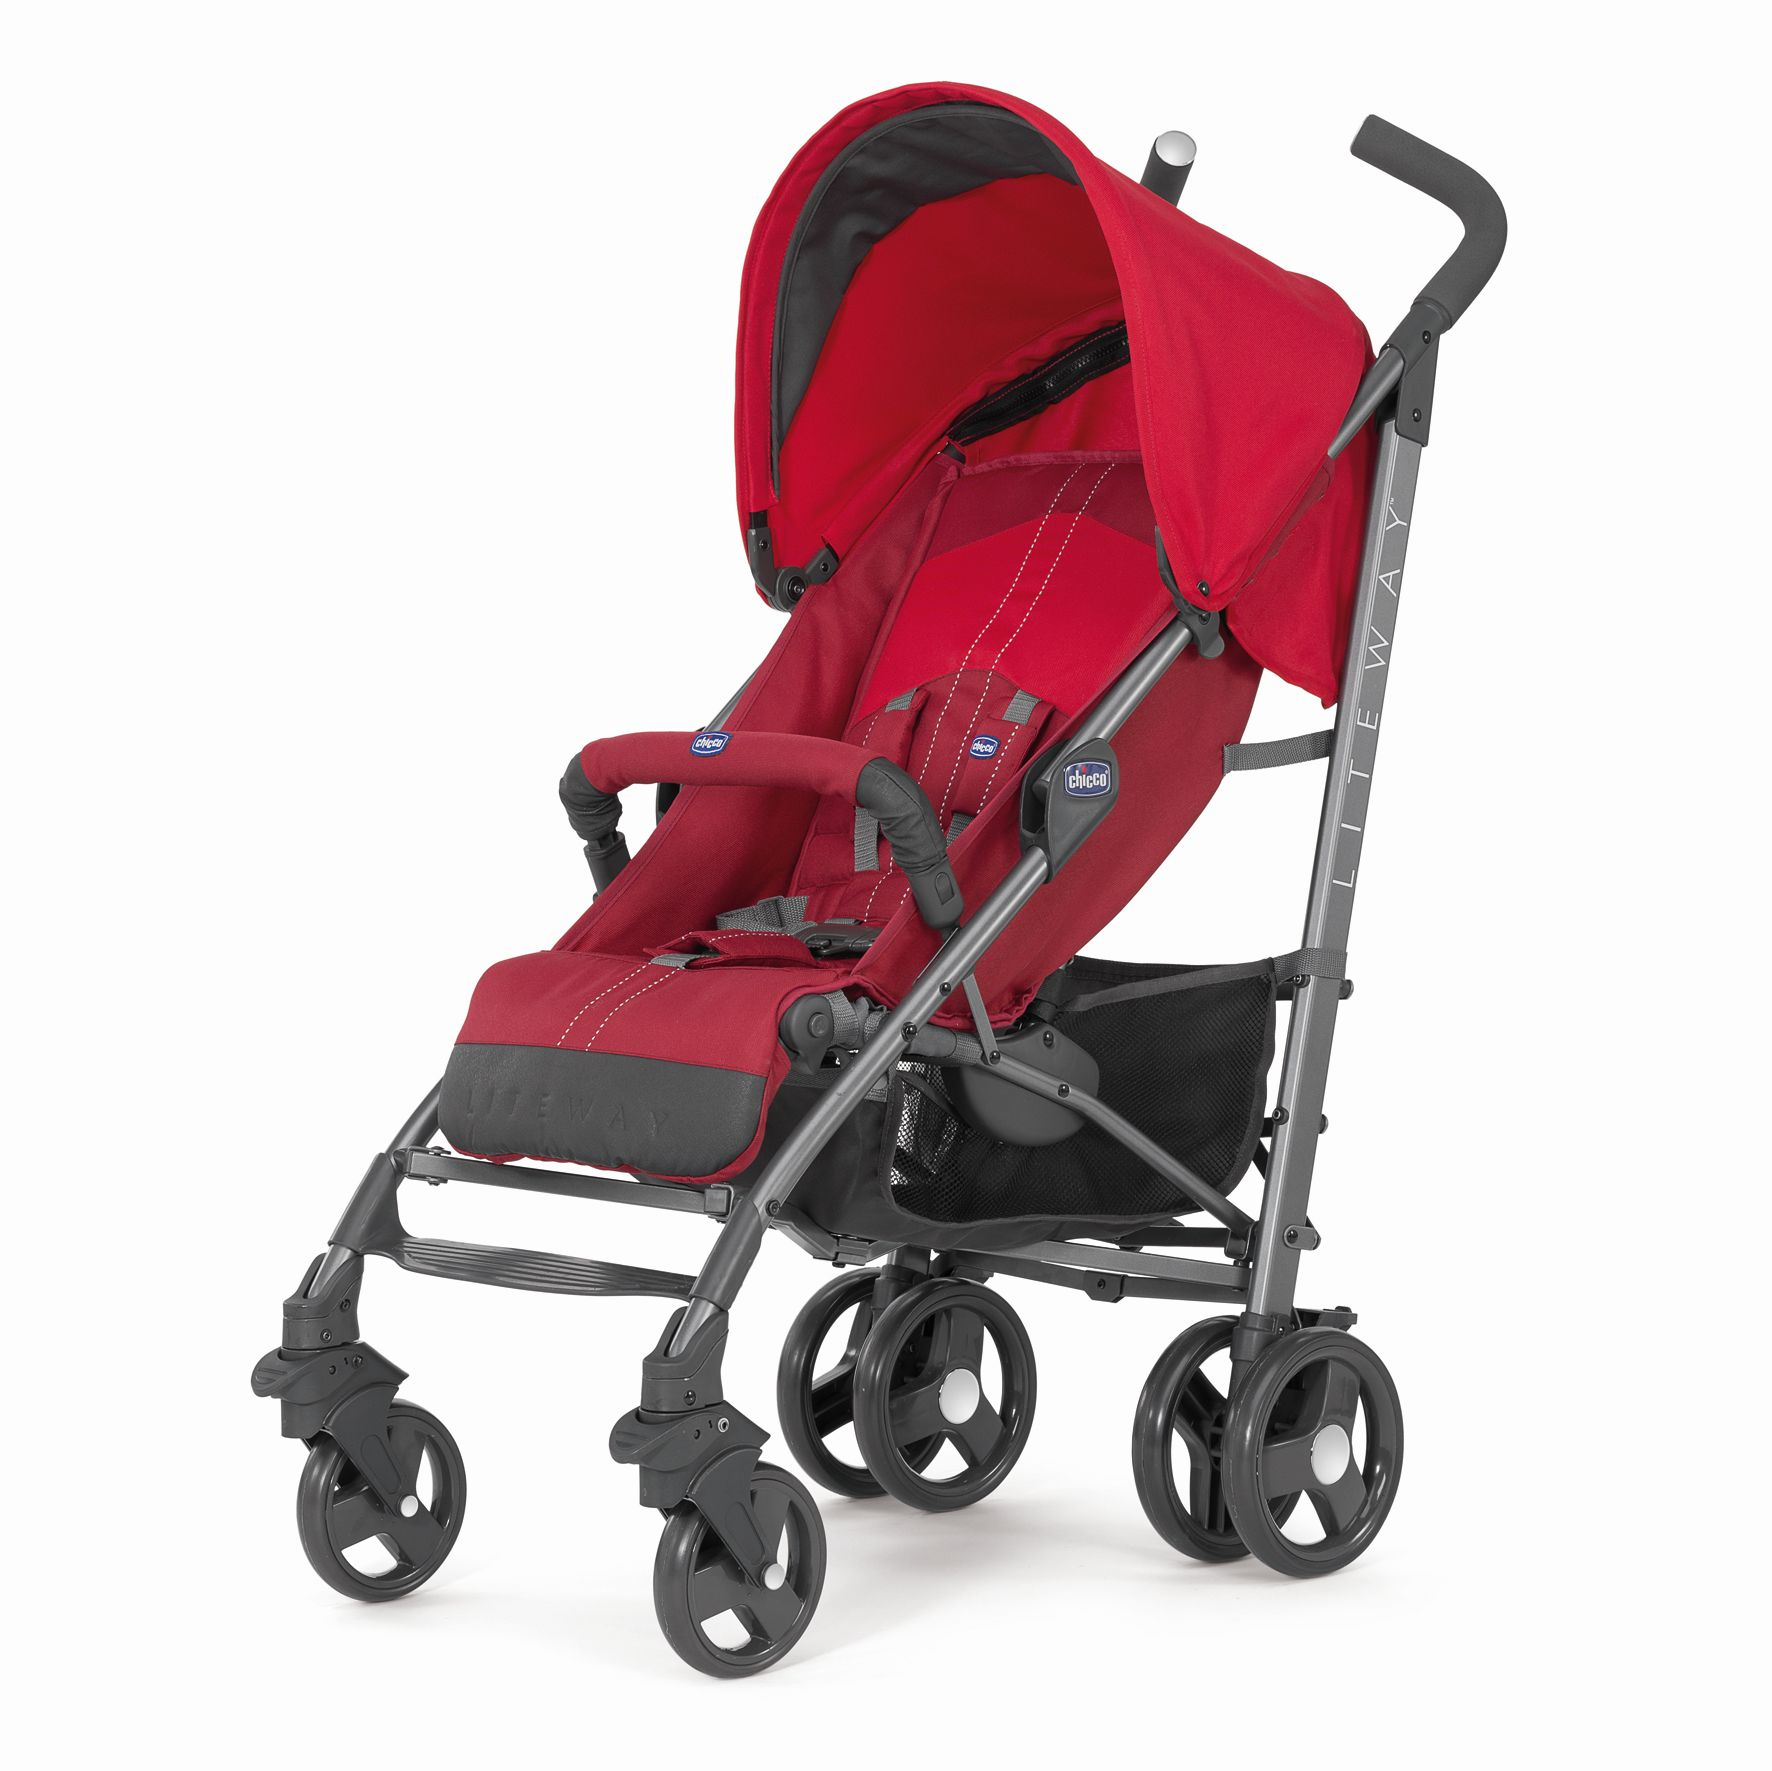 chicco lite way 3 pushchair 2017 red buy at kidsroom strollers. Black Bedroom Furniture Sets. Home Design Ideas